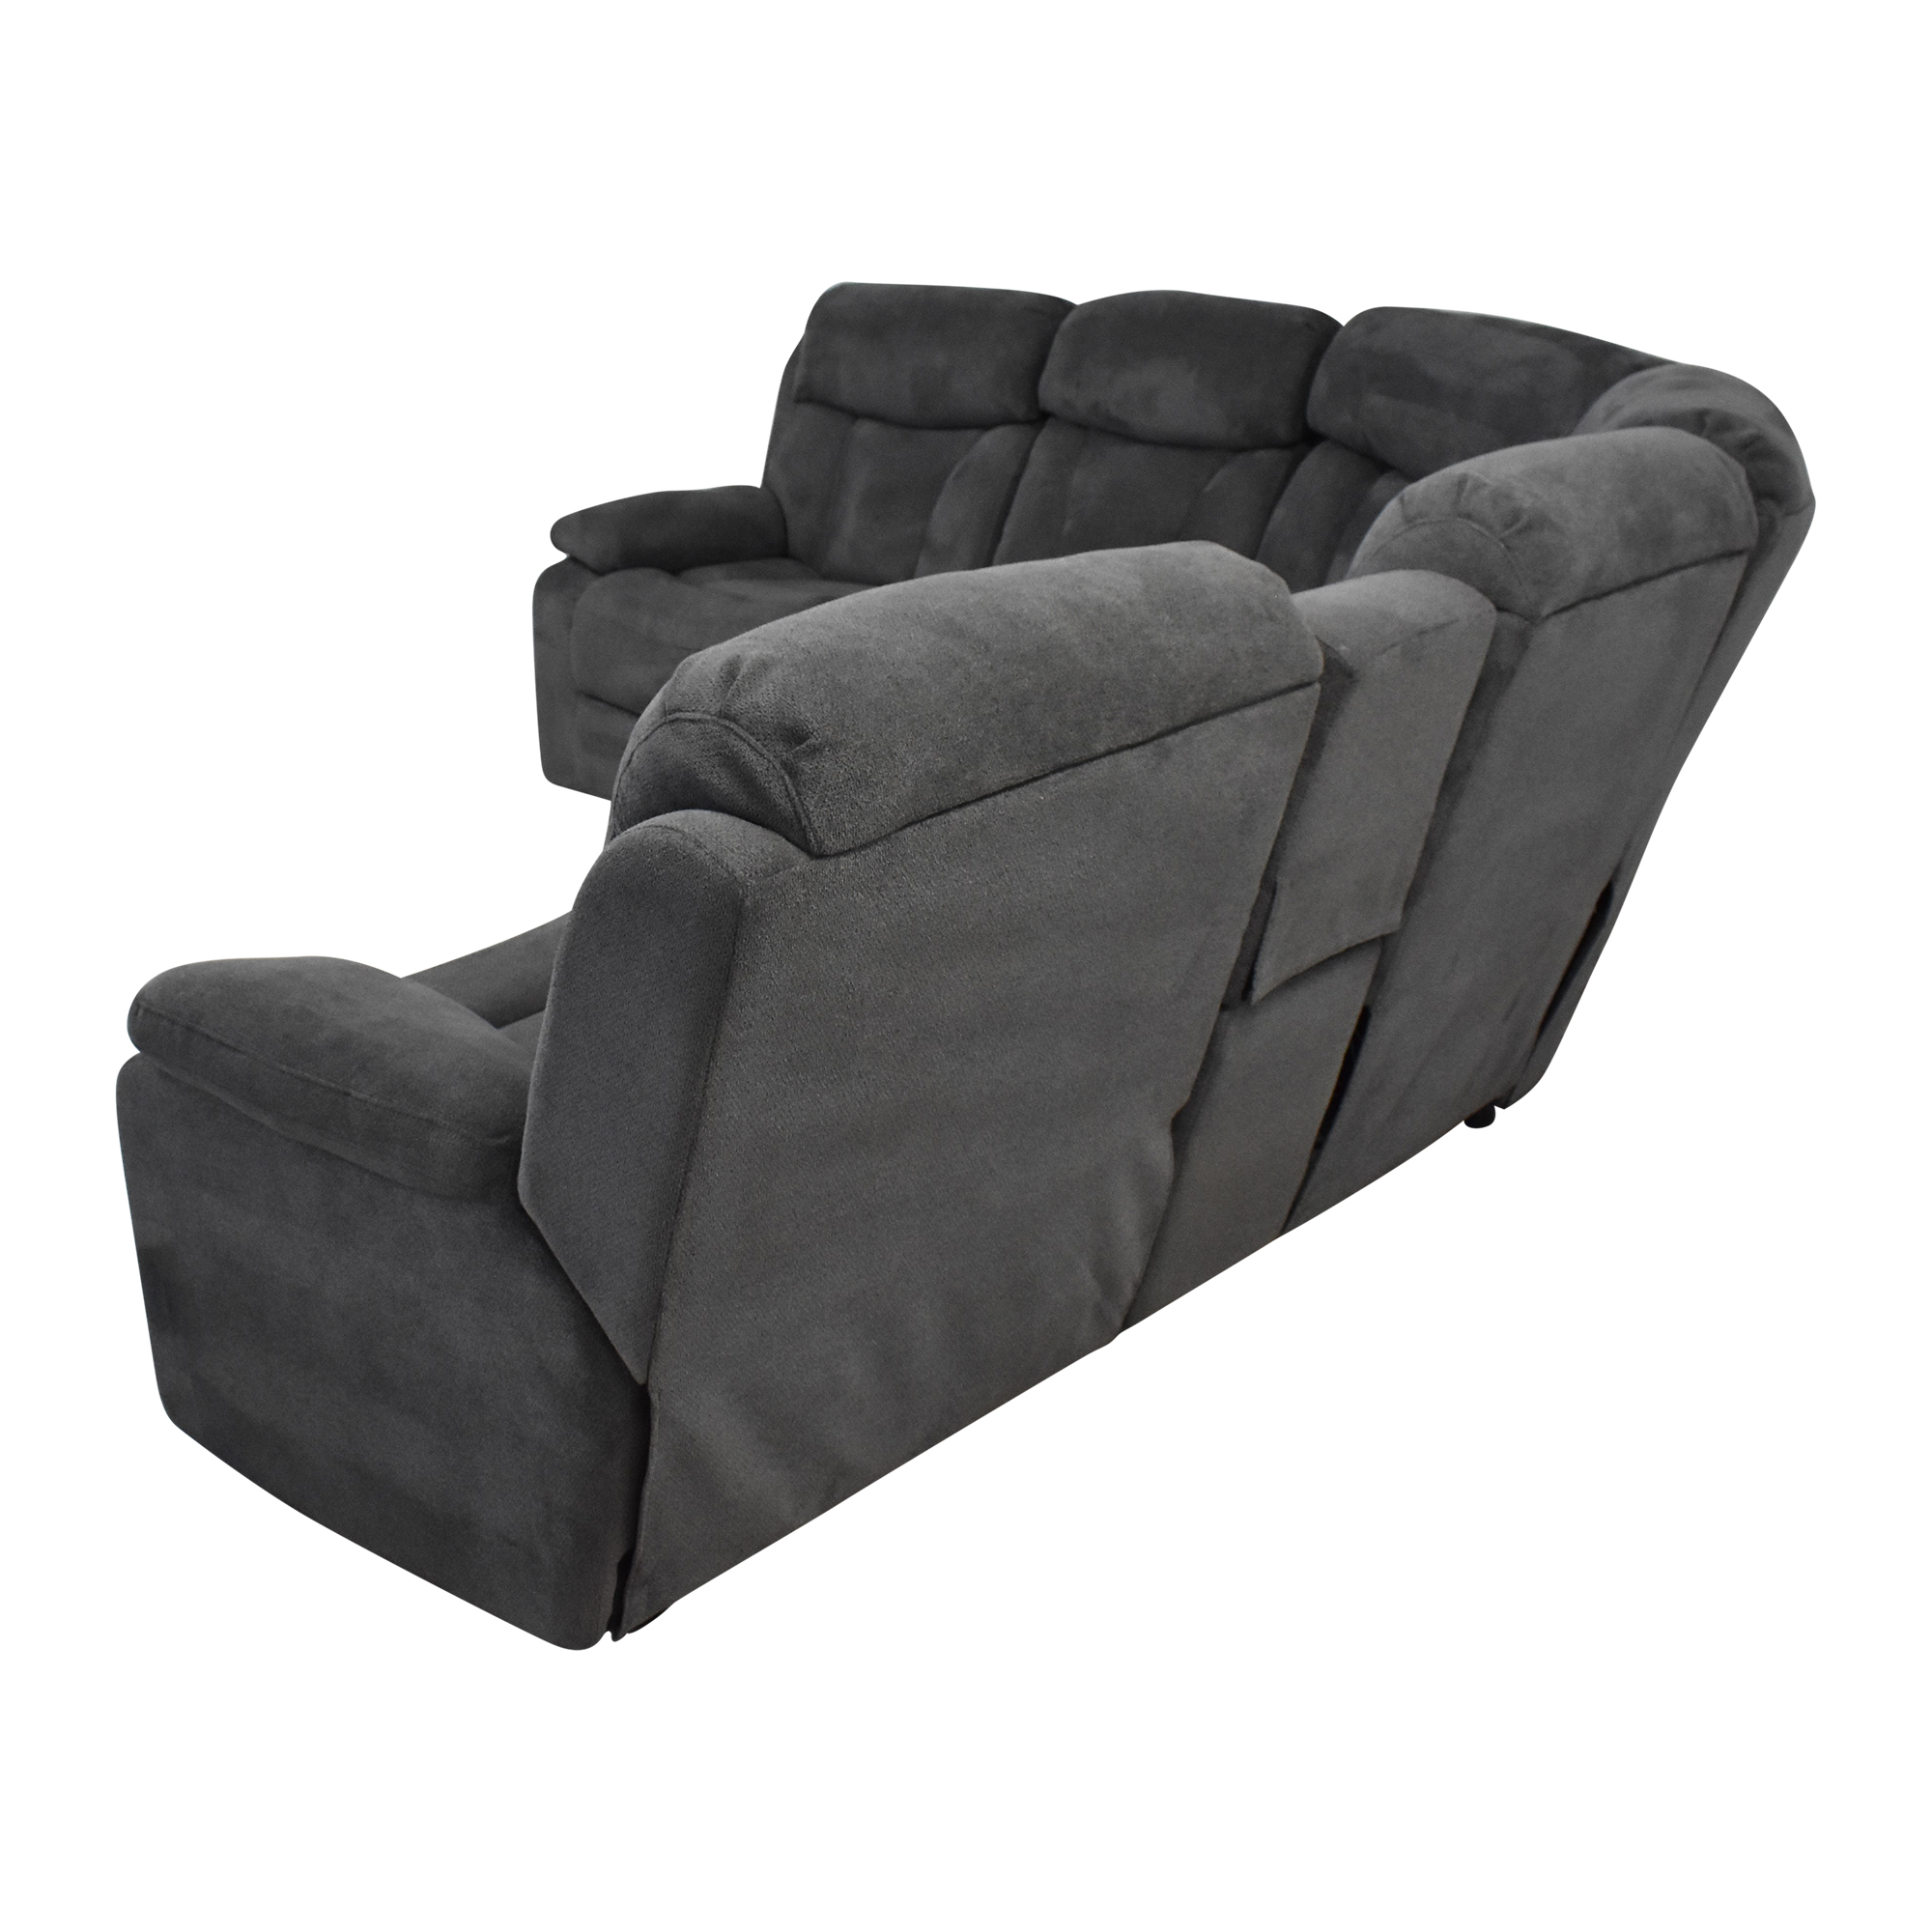 Raymour & Flanigan Raymour & Flanigan Connell Reclining Sectional Sofa coupon